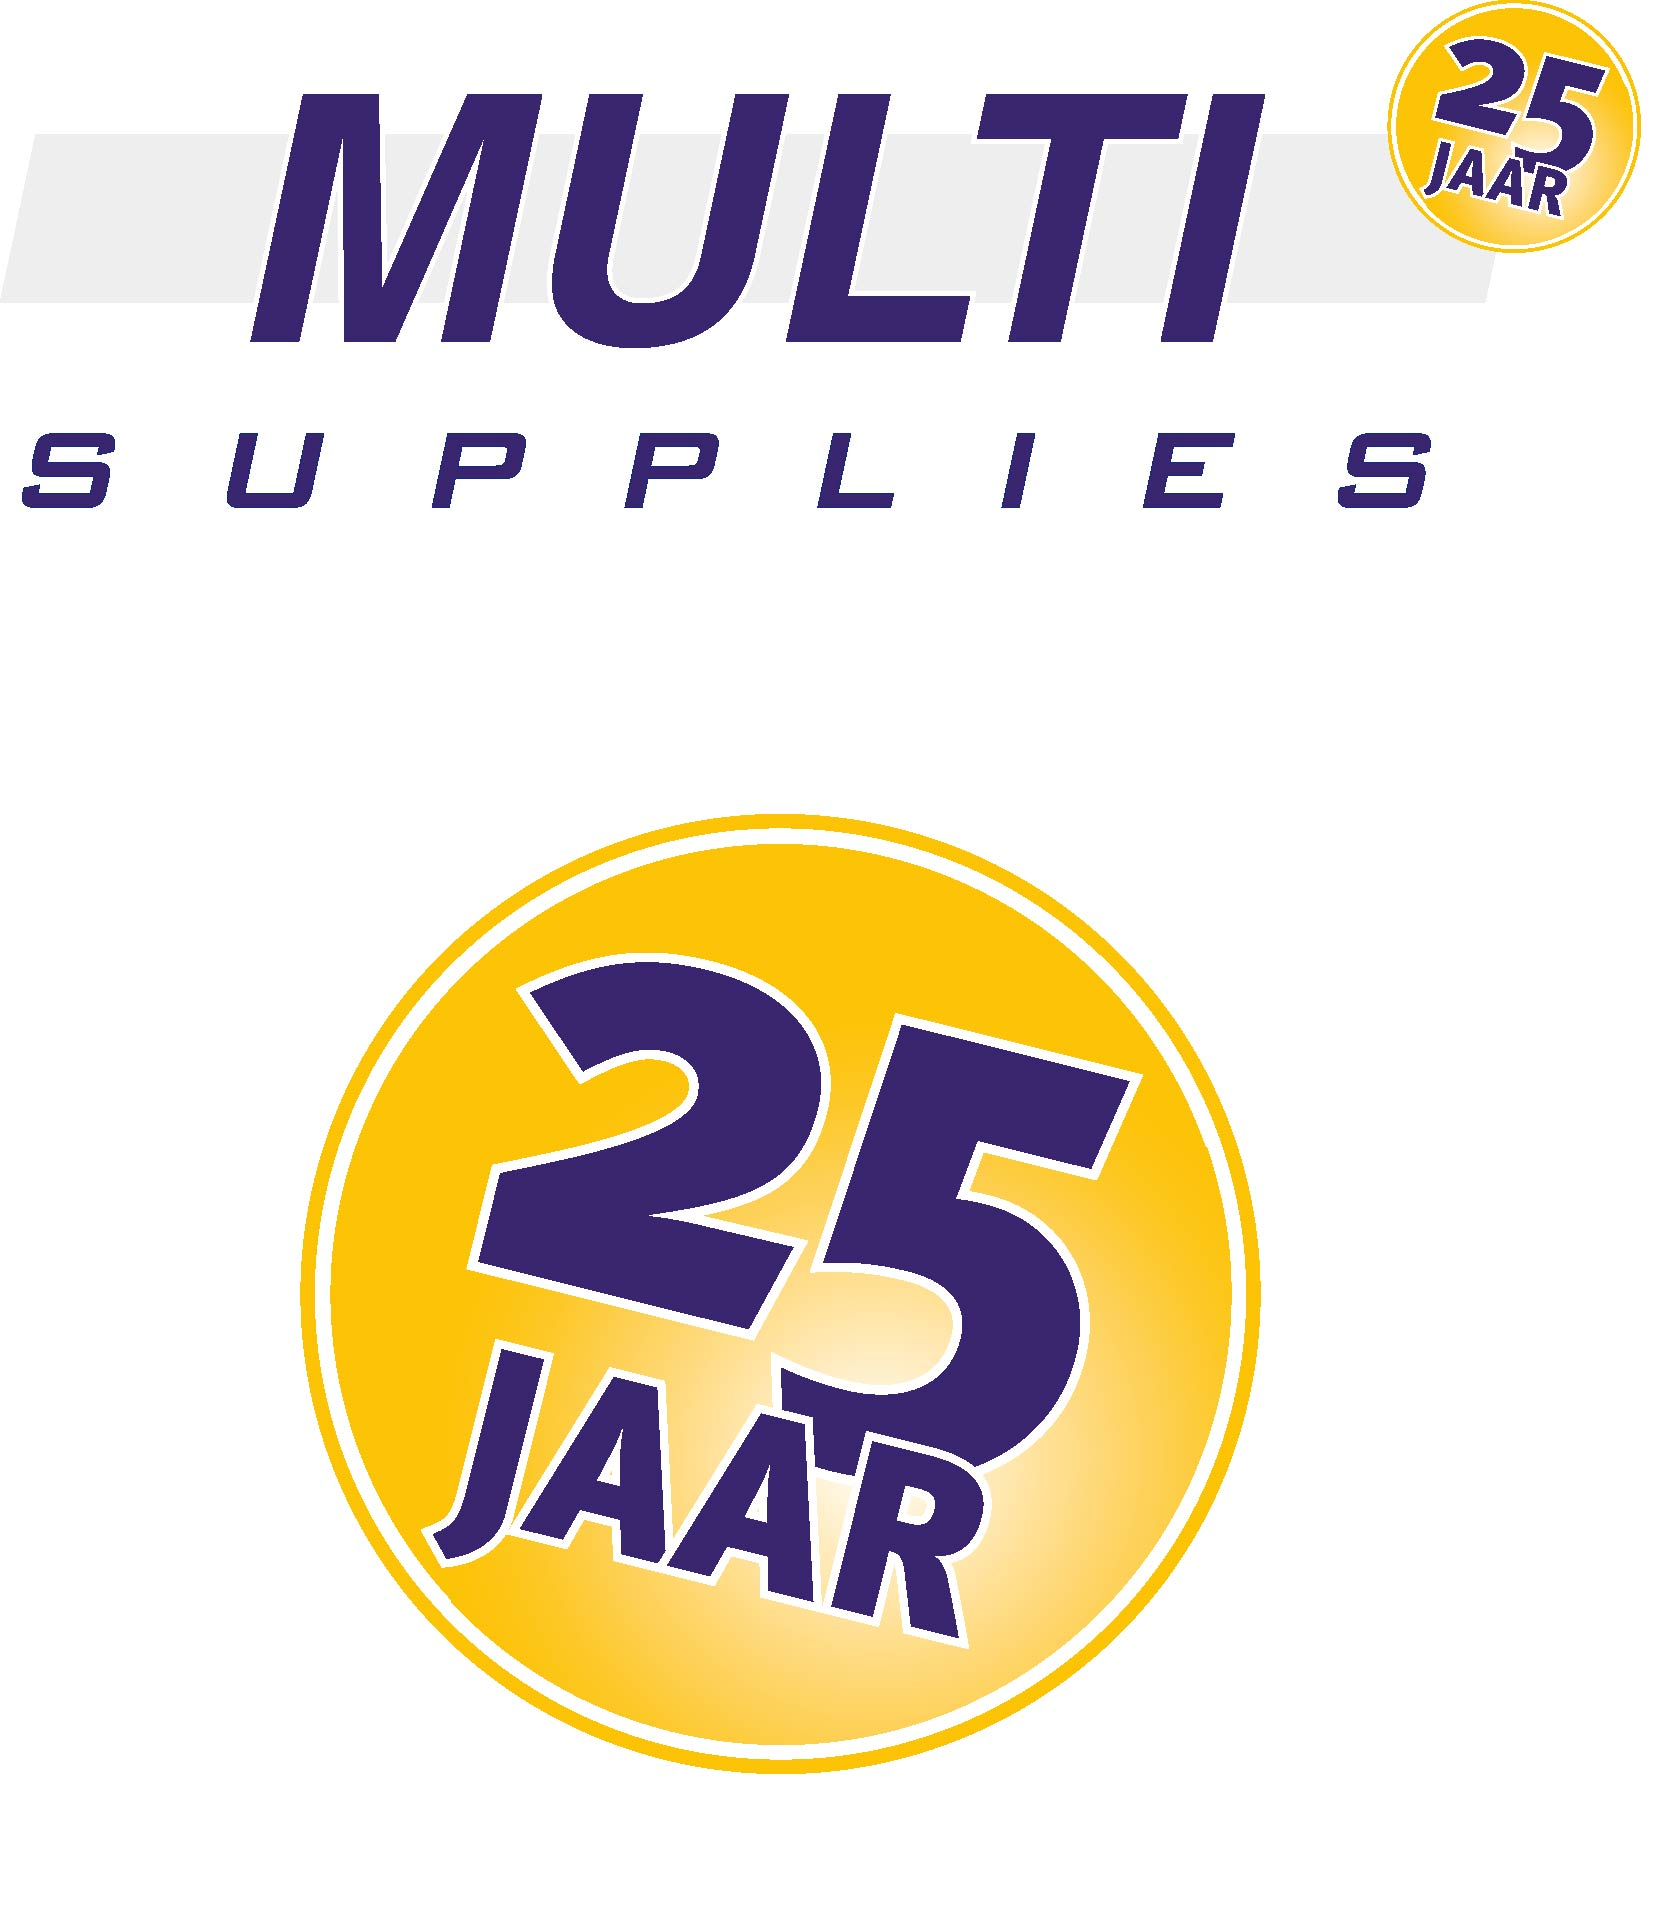 Multi Supplies is sponsor van de MeentRun